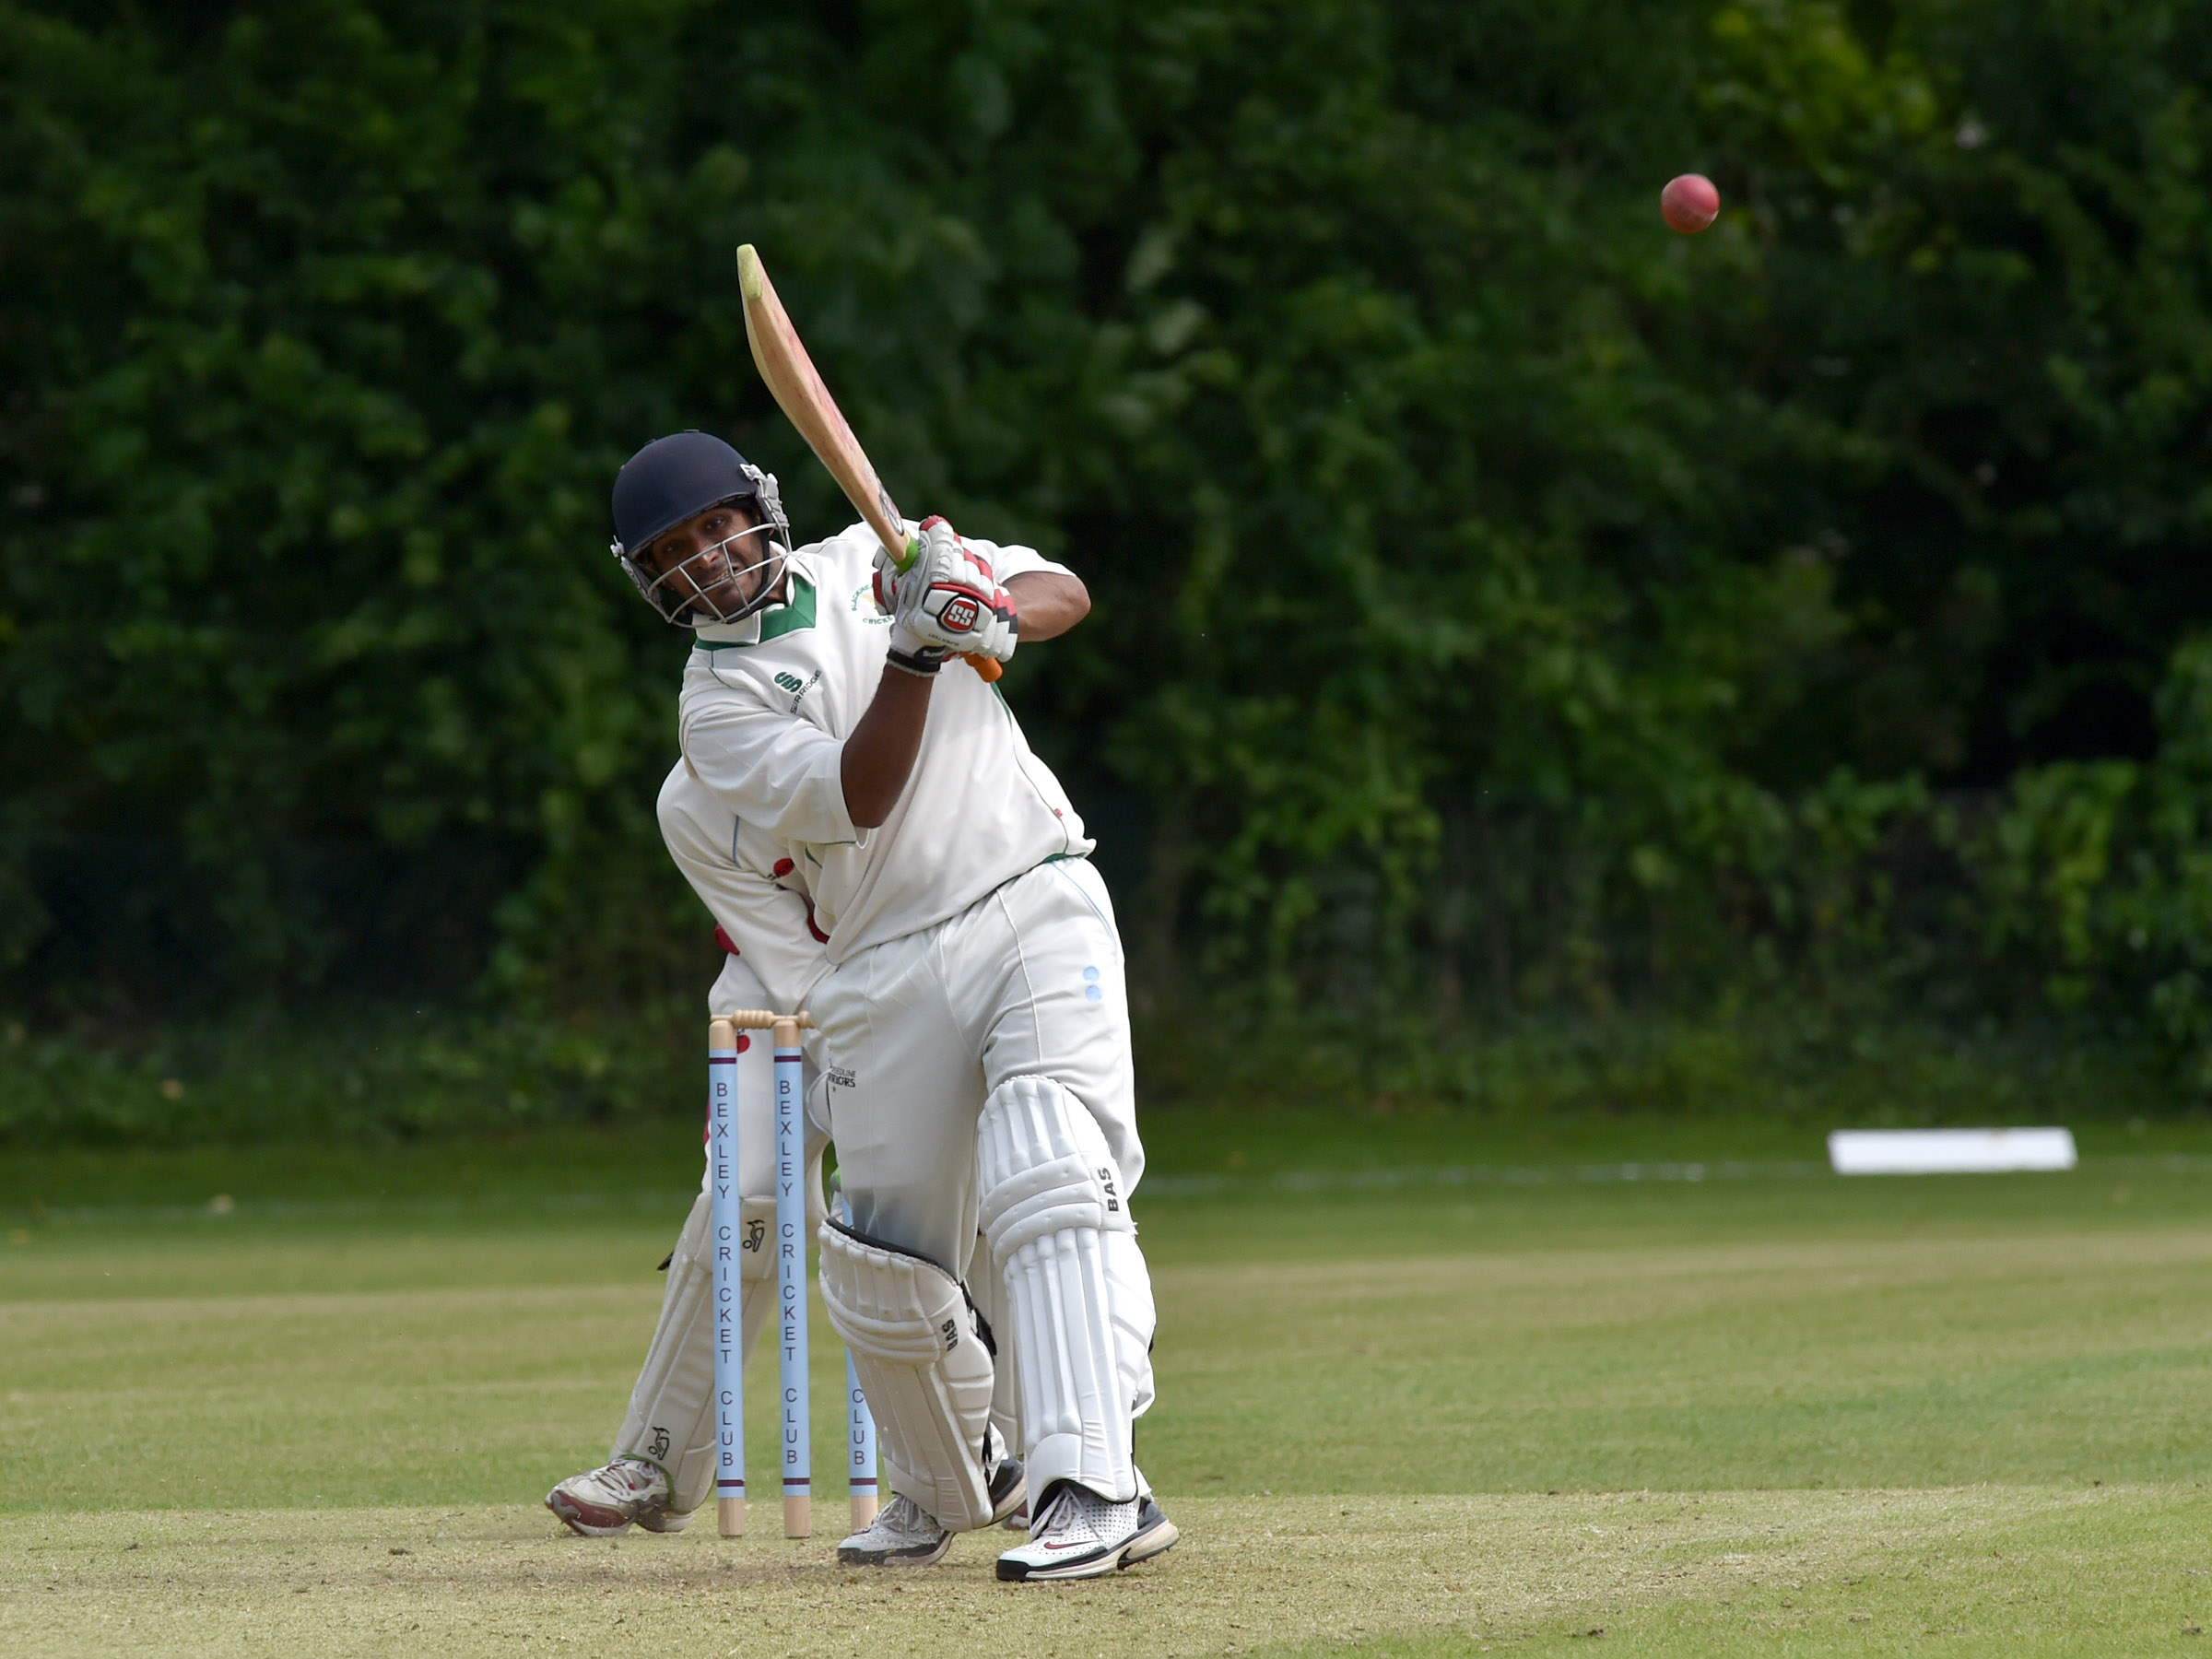 Batsman Tanweer Sikandar was in impressive form. Picture by Keith Gillard.